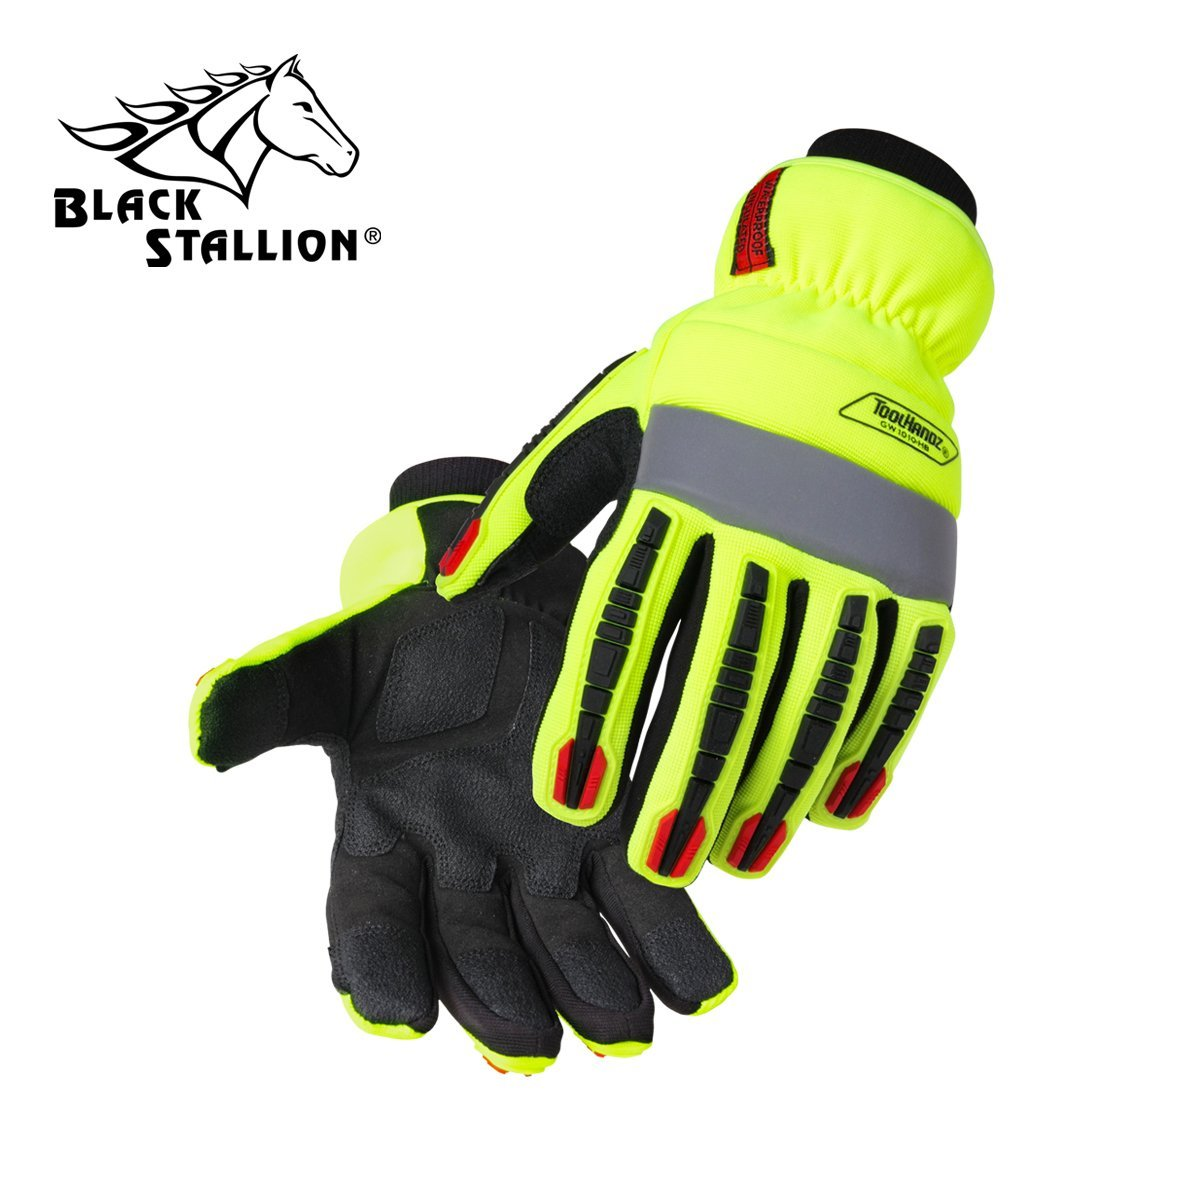 REVCO BLACK STALLION - GW1010-HB TOOLHANDZ HI-VIS SYNTHETIC LEATHER WINTER GLOVES - SIZE: MEDIUM - CASE OF: 60 PAIR